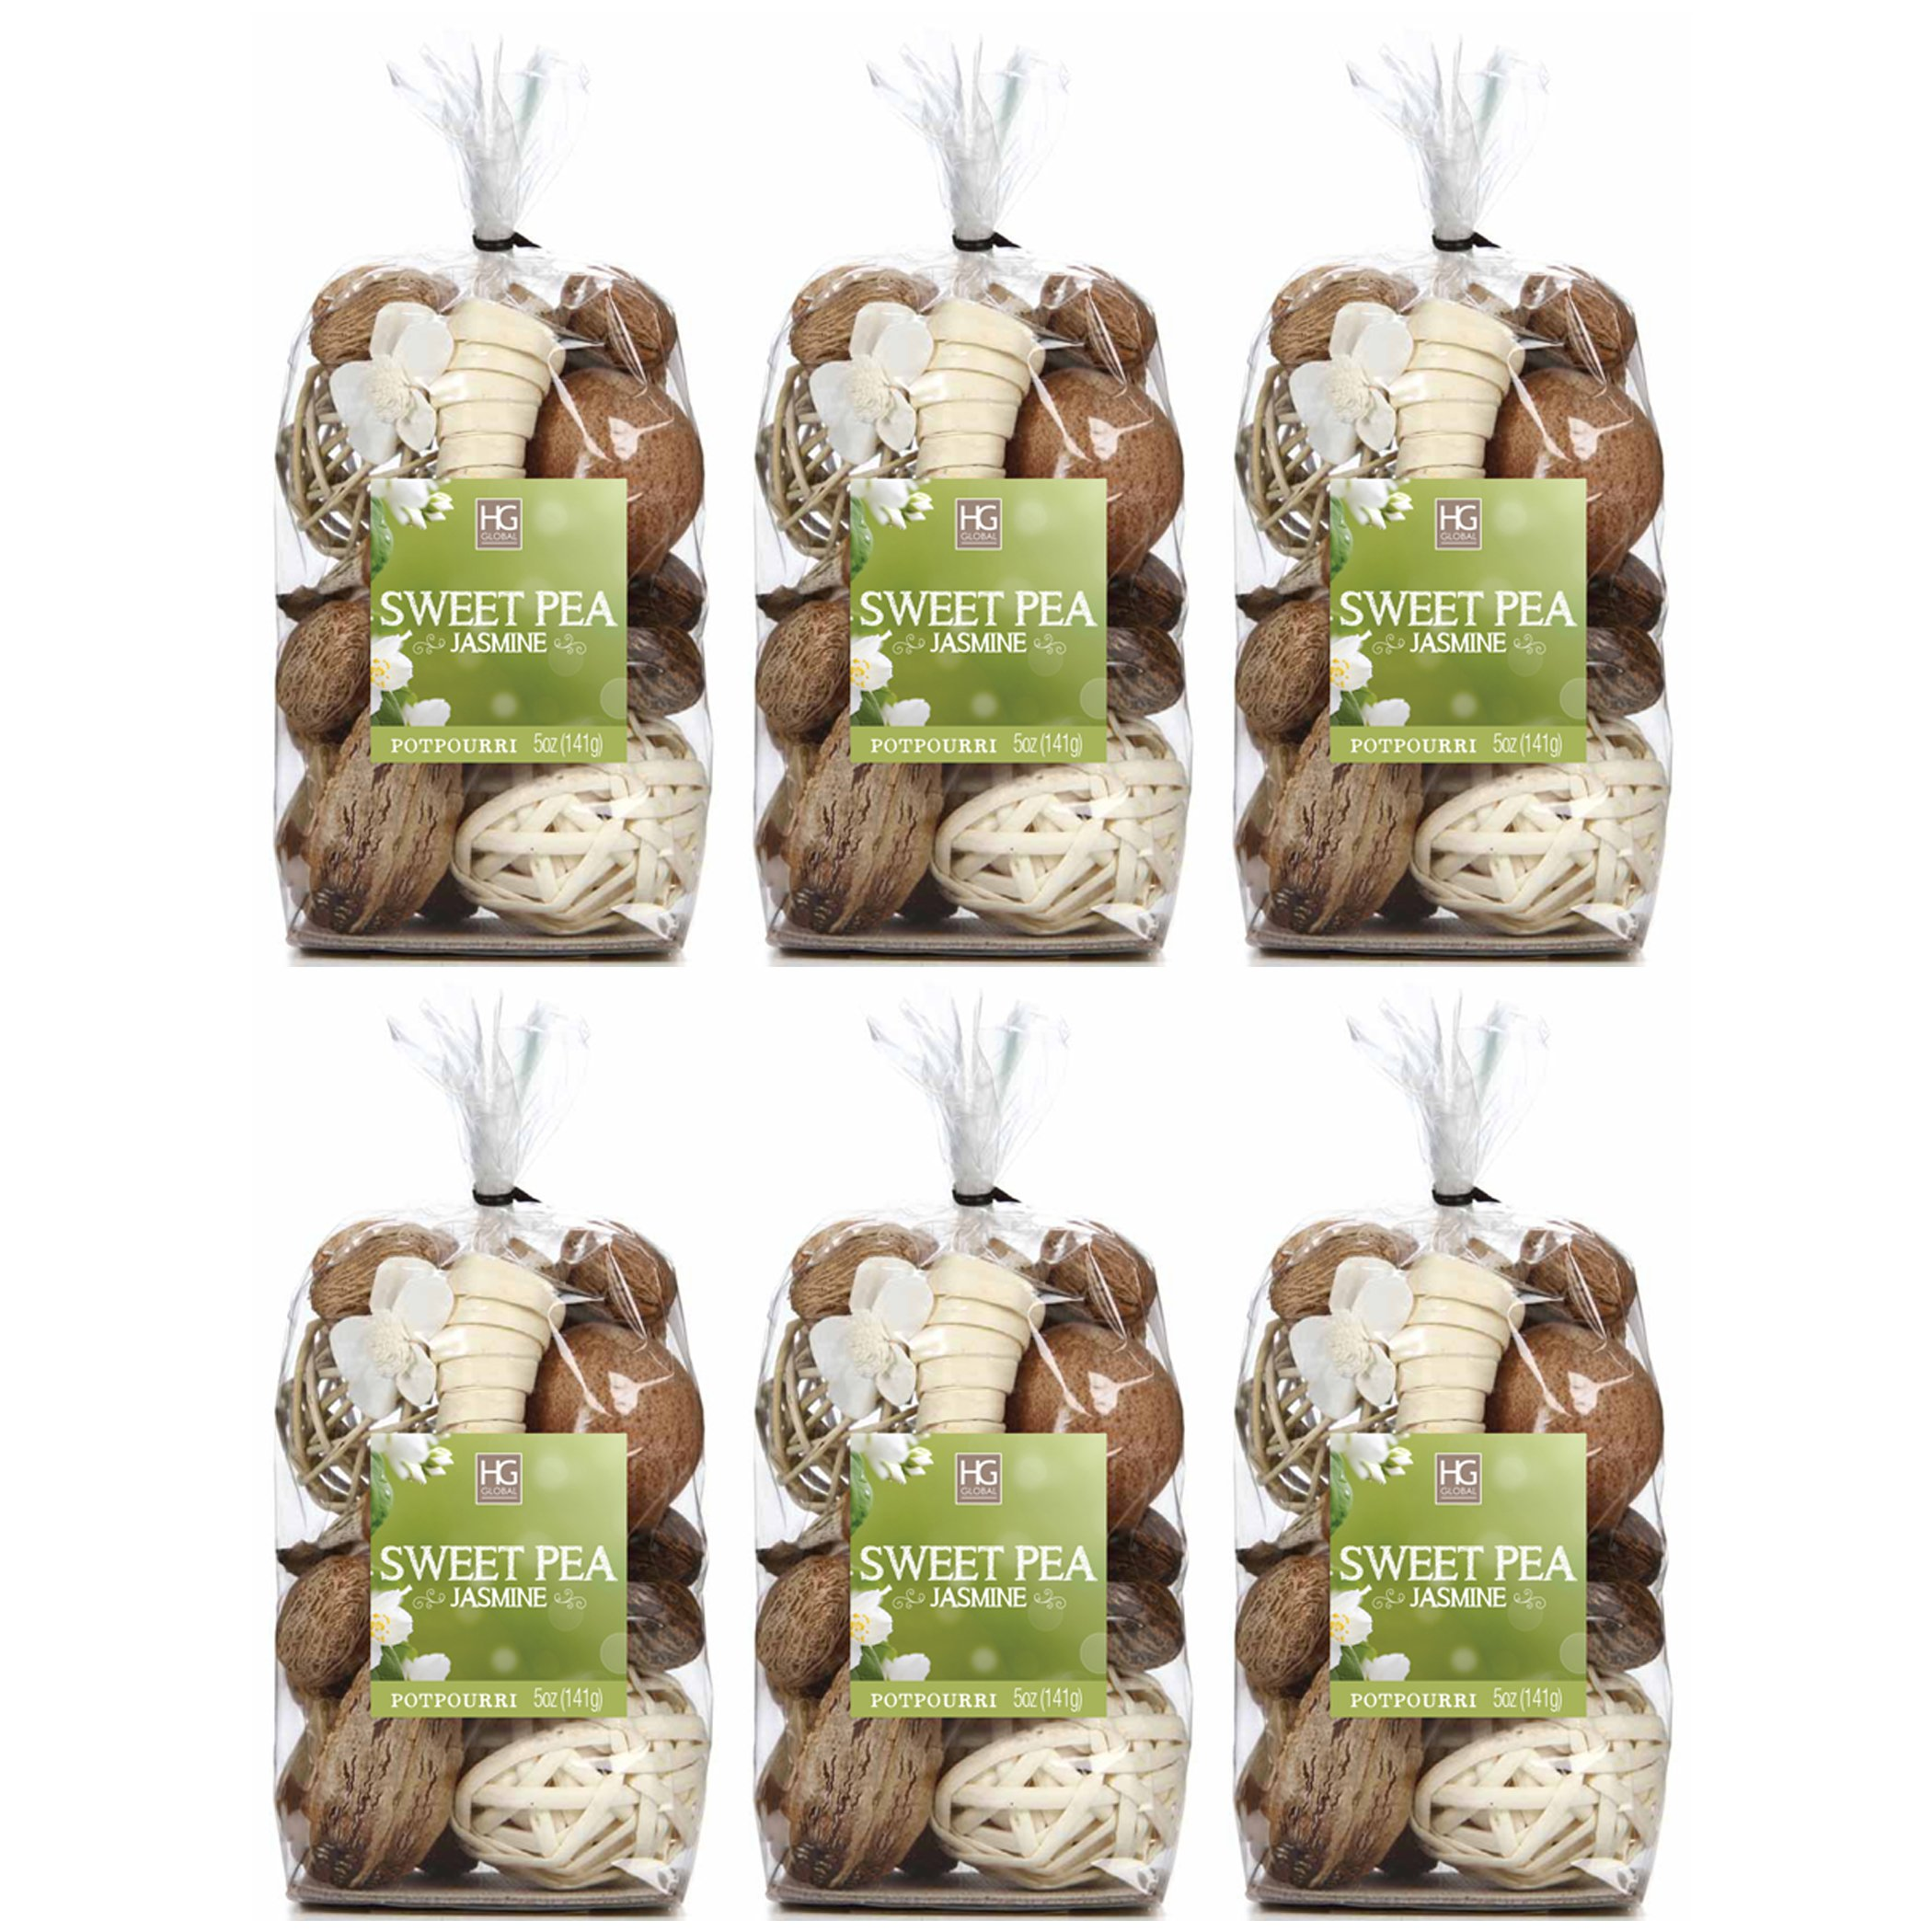 Hosley Sweet Pea Jasmine Chunky Potpourri. Set of 6 Bags, 5 Oz Each, Total 30 Oz Bulk Buy. Ideal for Party Favor, Weddings, Spa, Reiki, Meditation, Bathroom Settings. O4